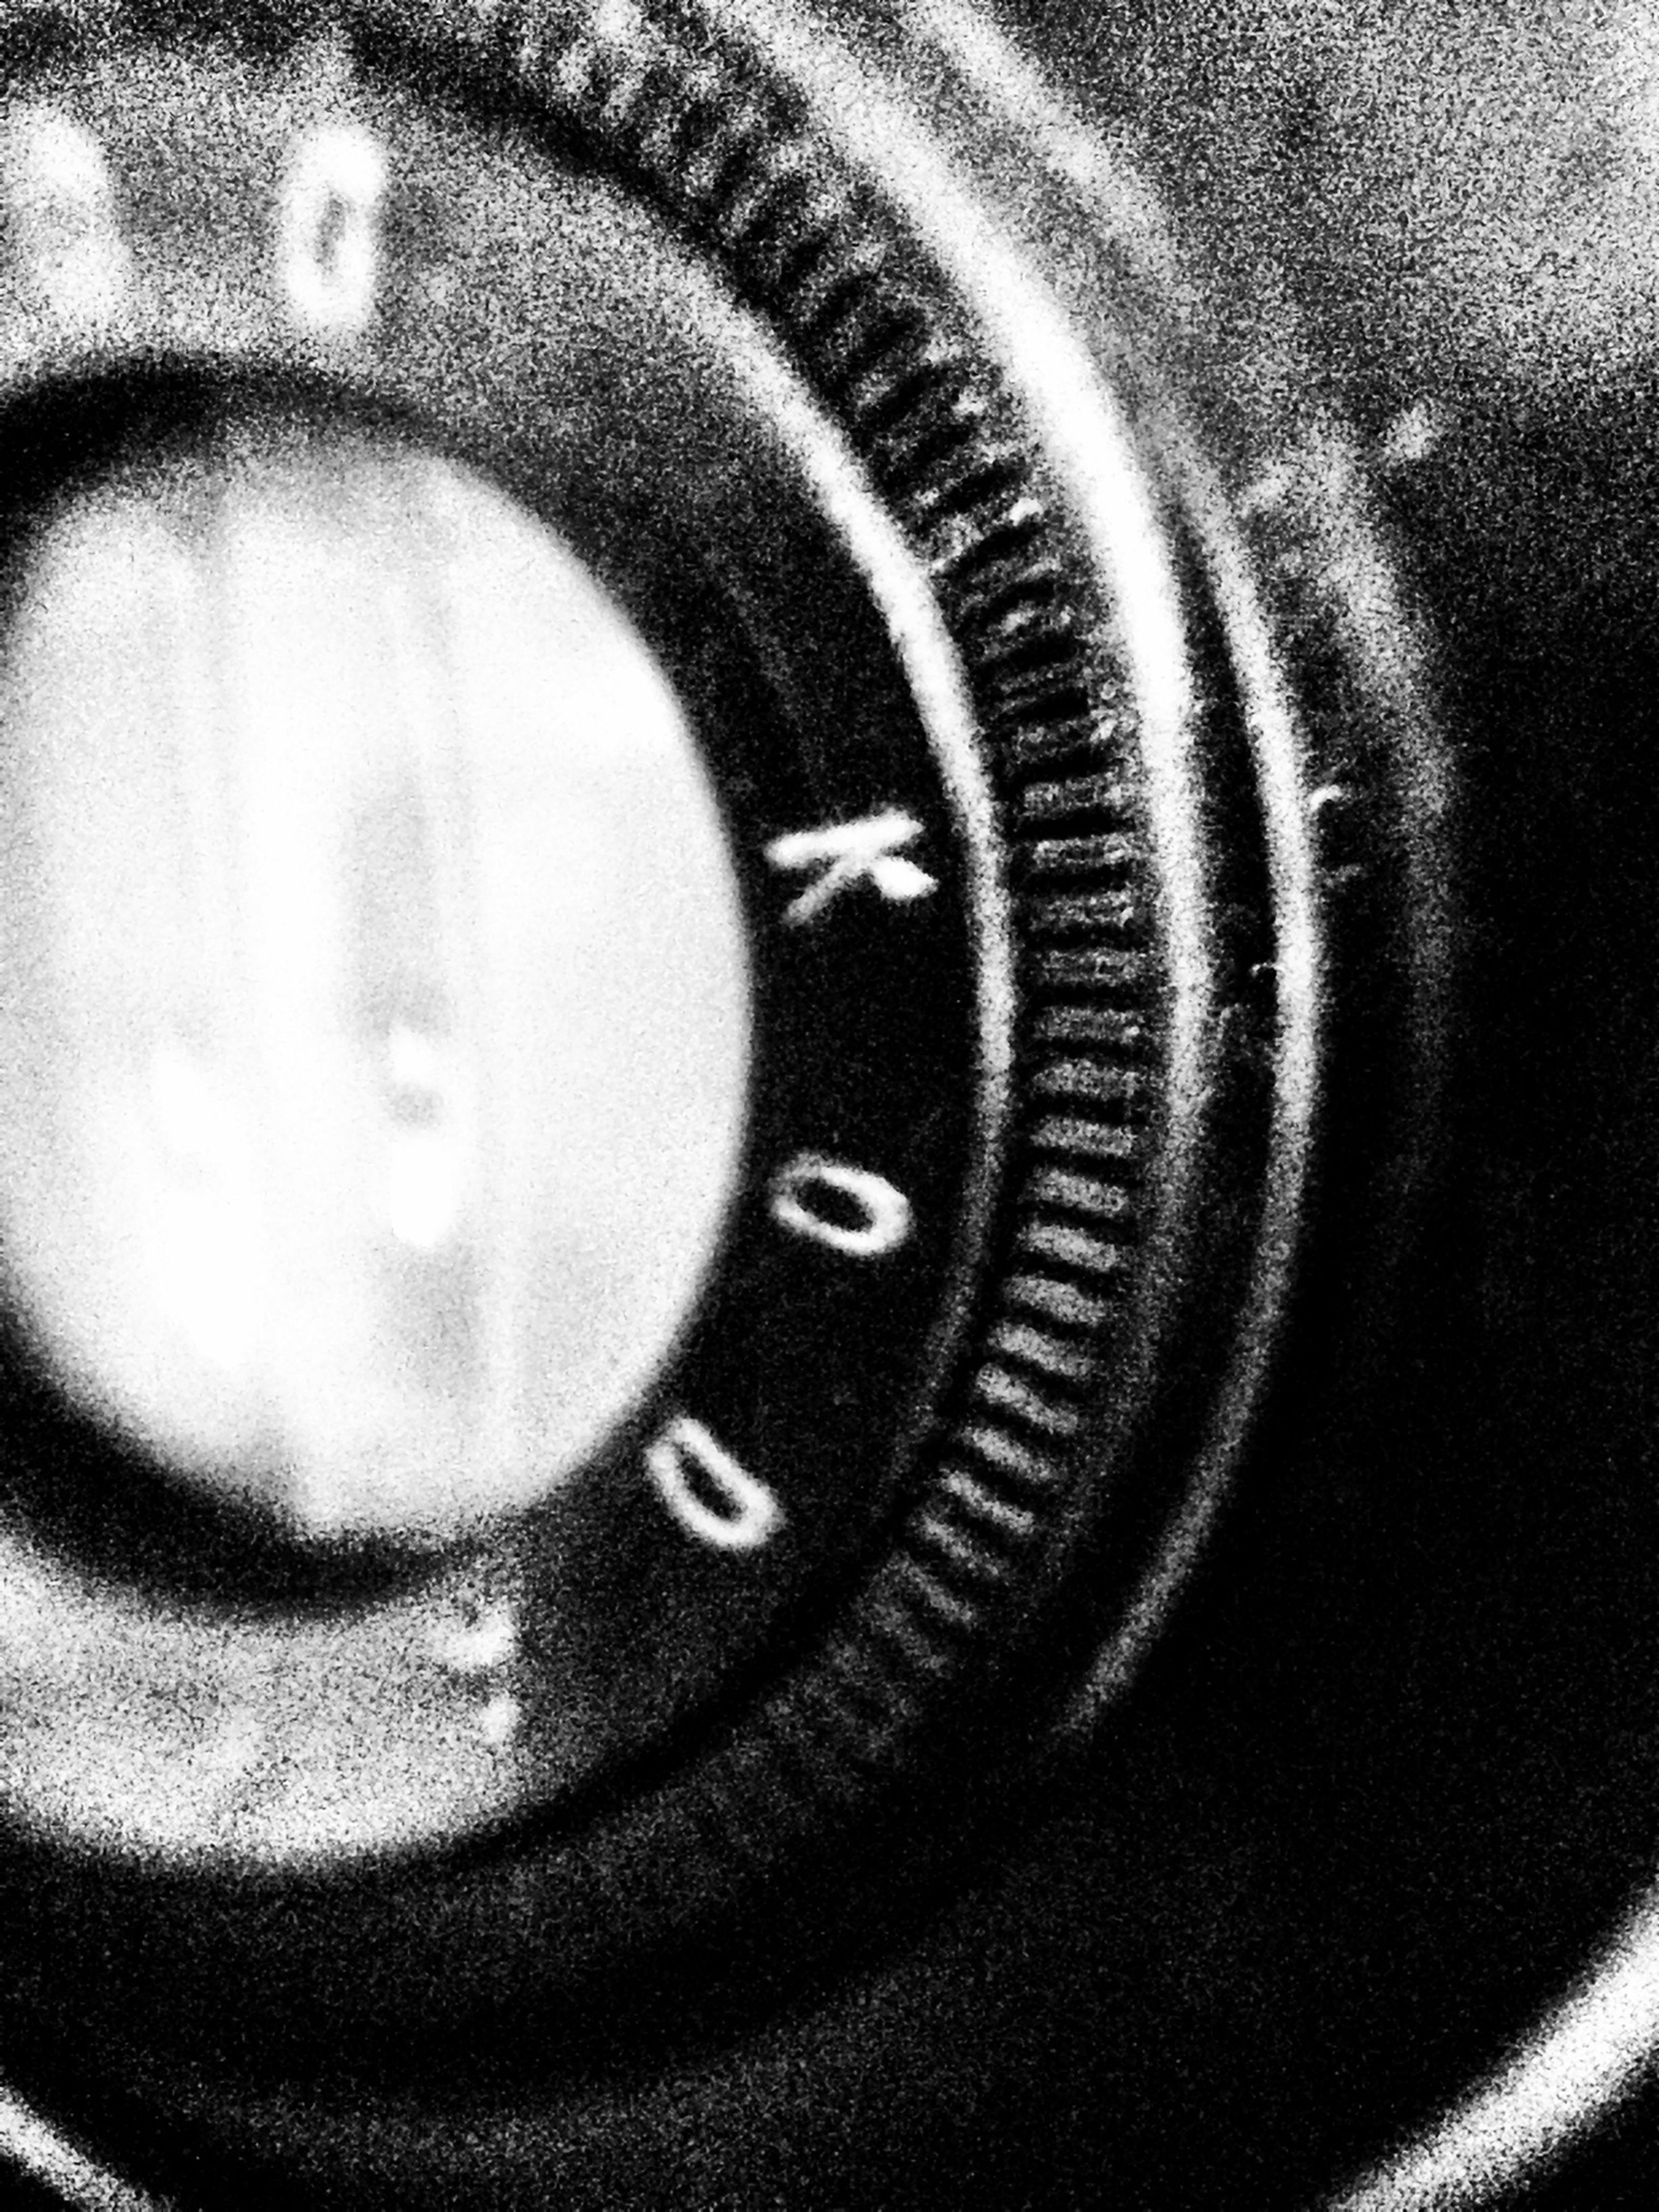 indoors, close-up, circle, part of, technology, reflection, selective focus, focus on foreground, still life, single object, photography themes, high angle view, time, camera - photographic equipment, cropped, human eye, lens - optical instrument